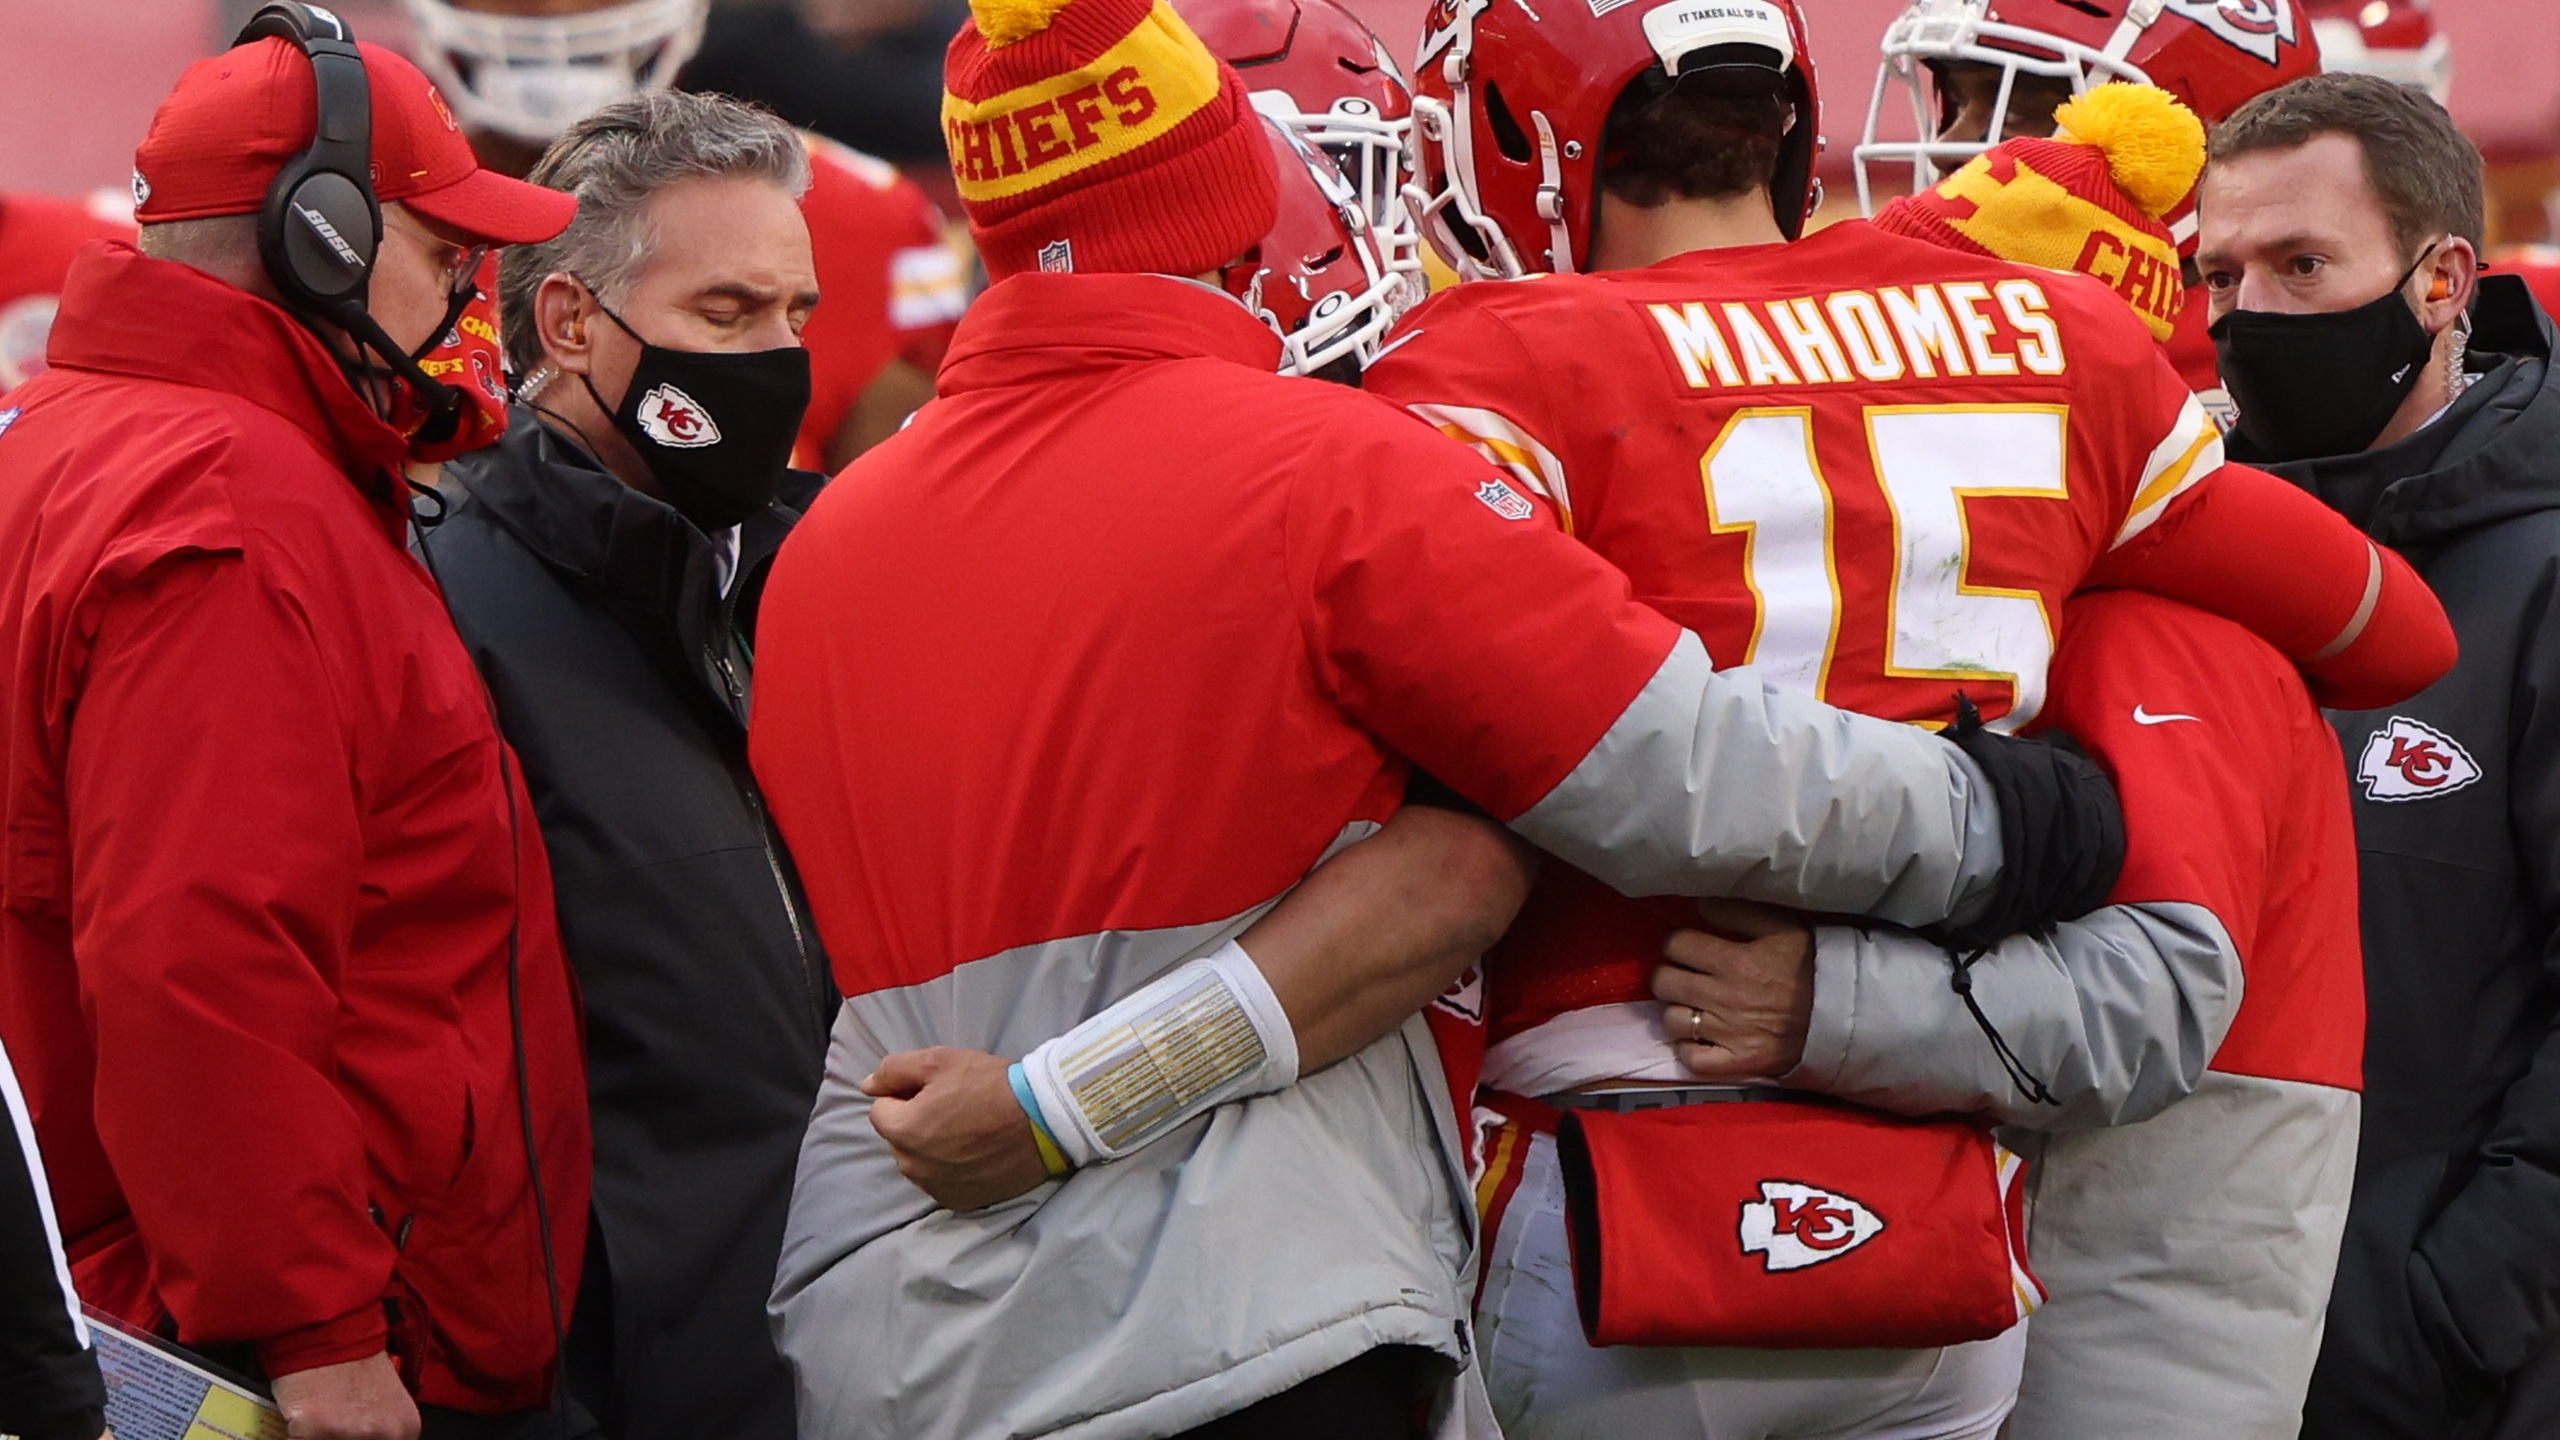 Mahomes walking off the field assisted